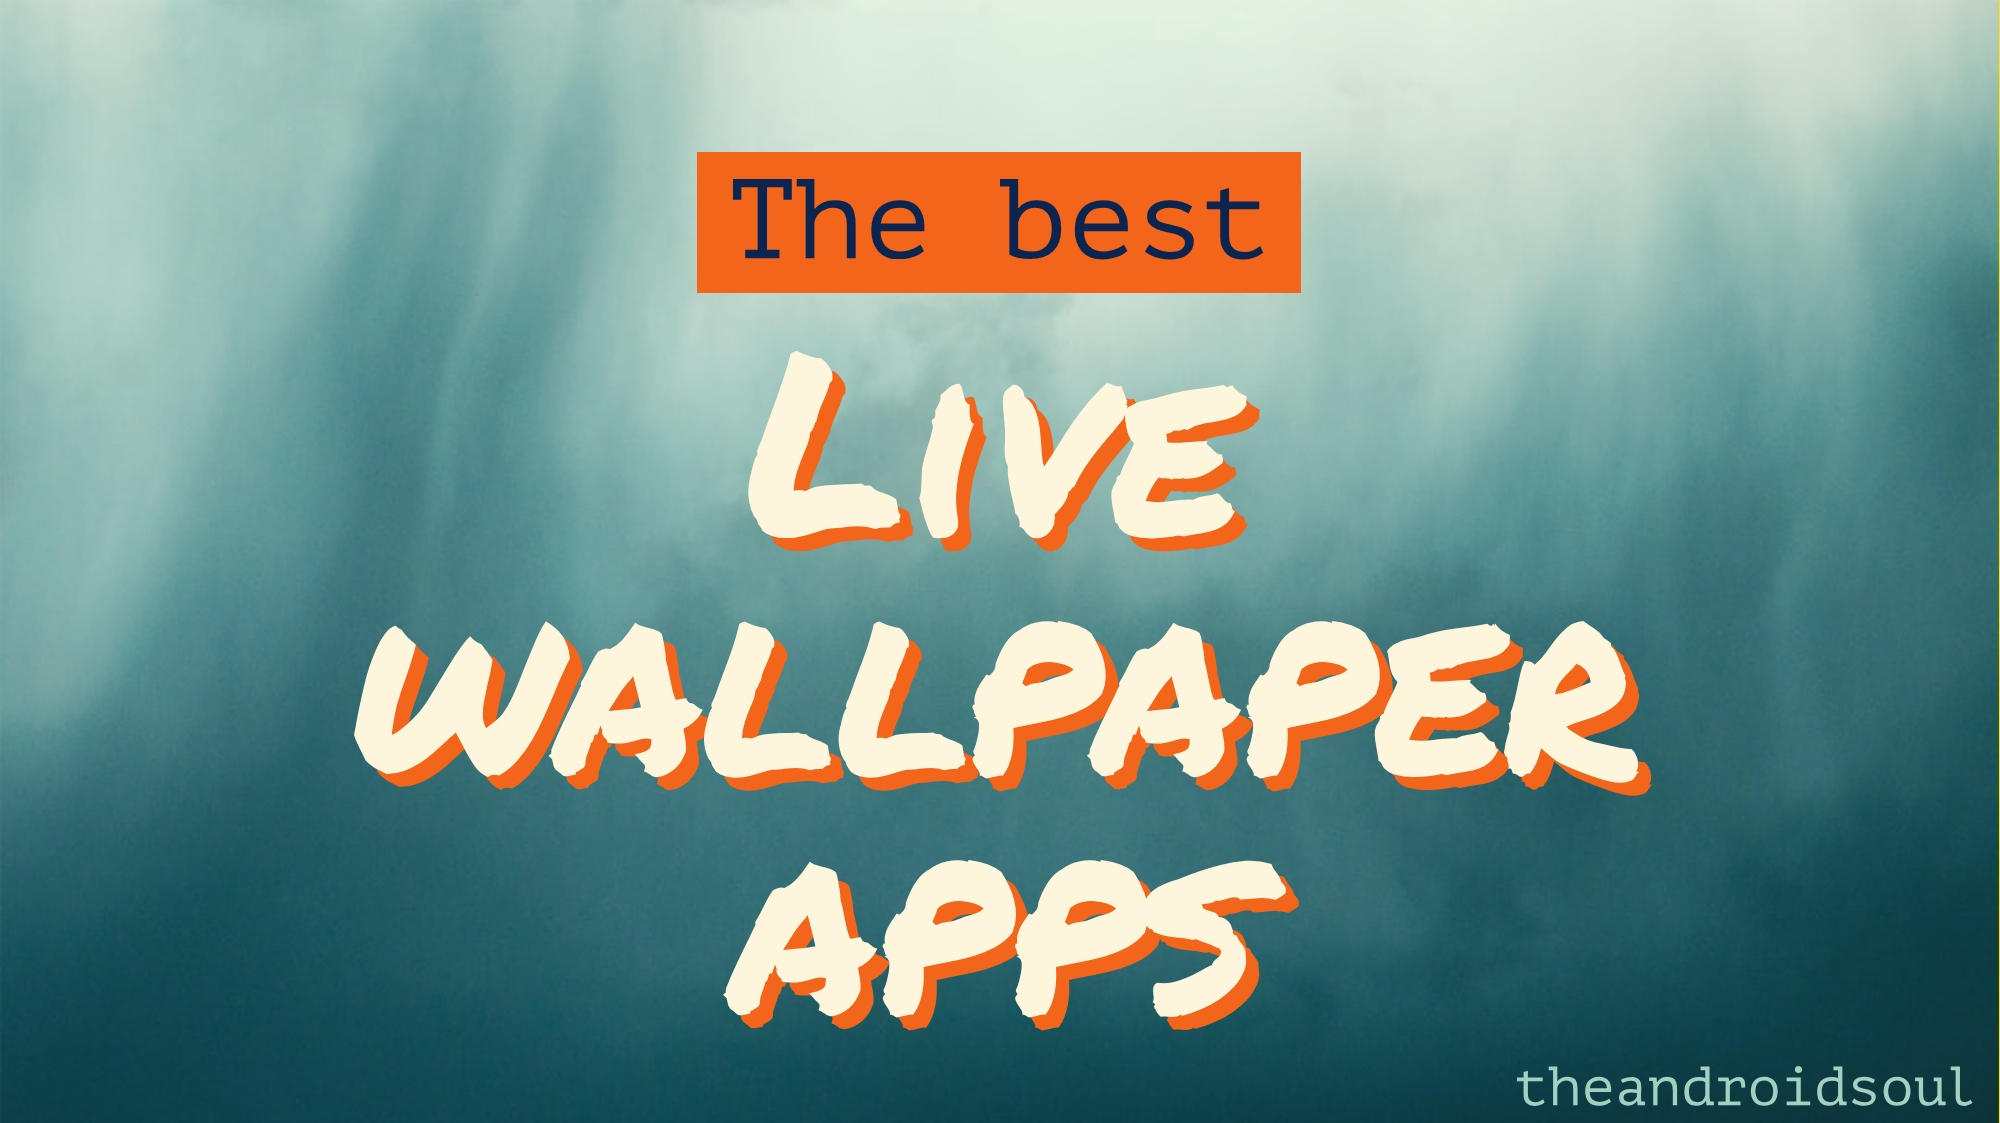 The best live wallpaper apps for Android: Spice up your